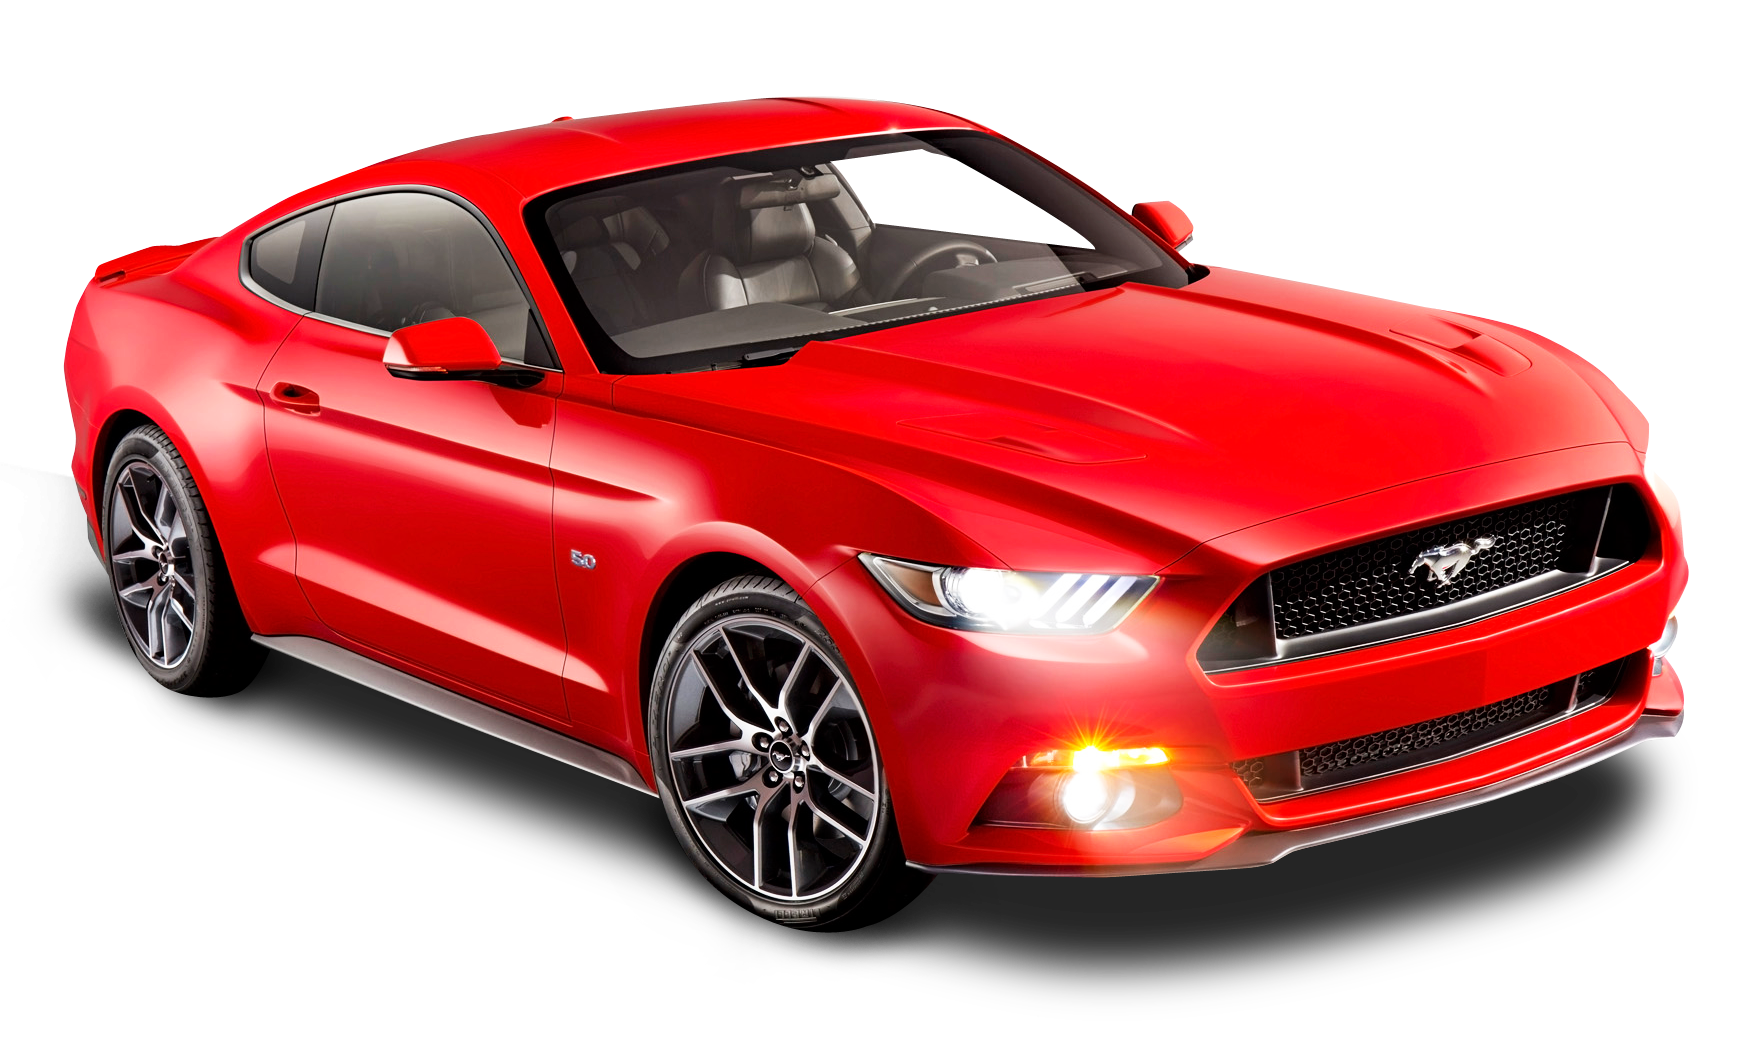 Ford Mustang Red Car PNG Image.